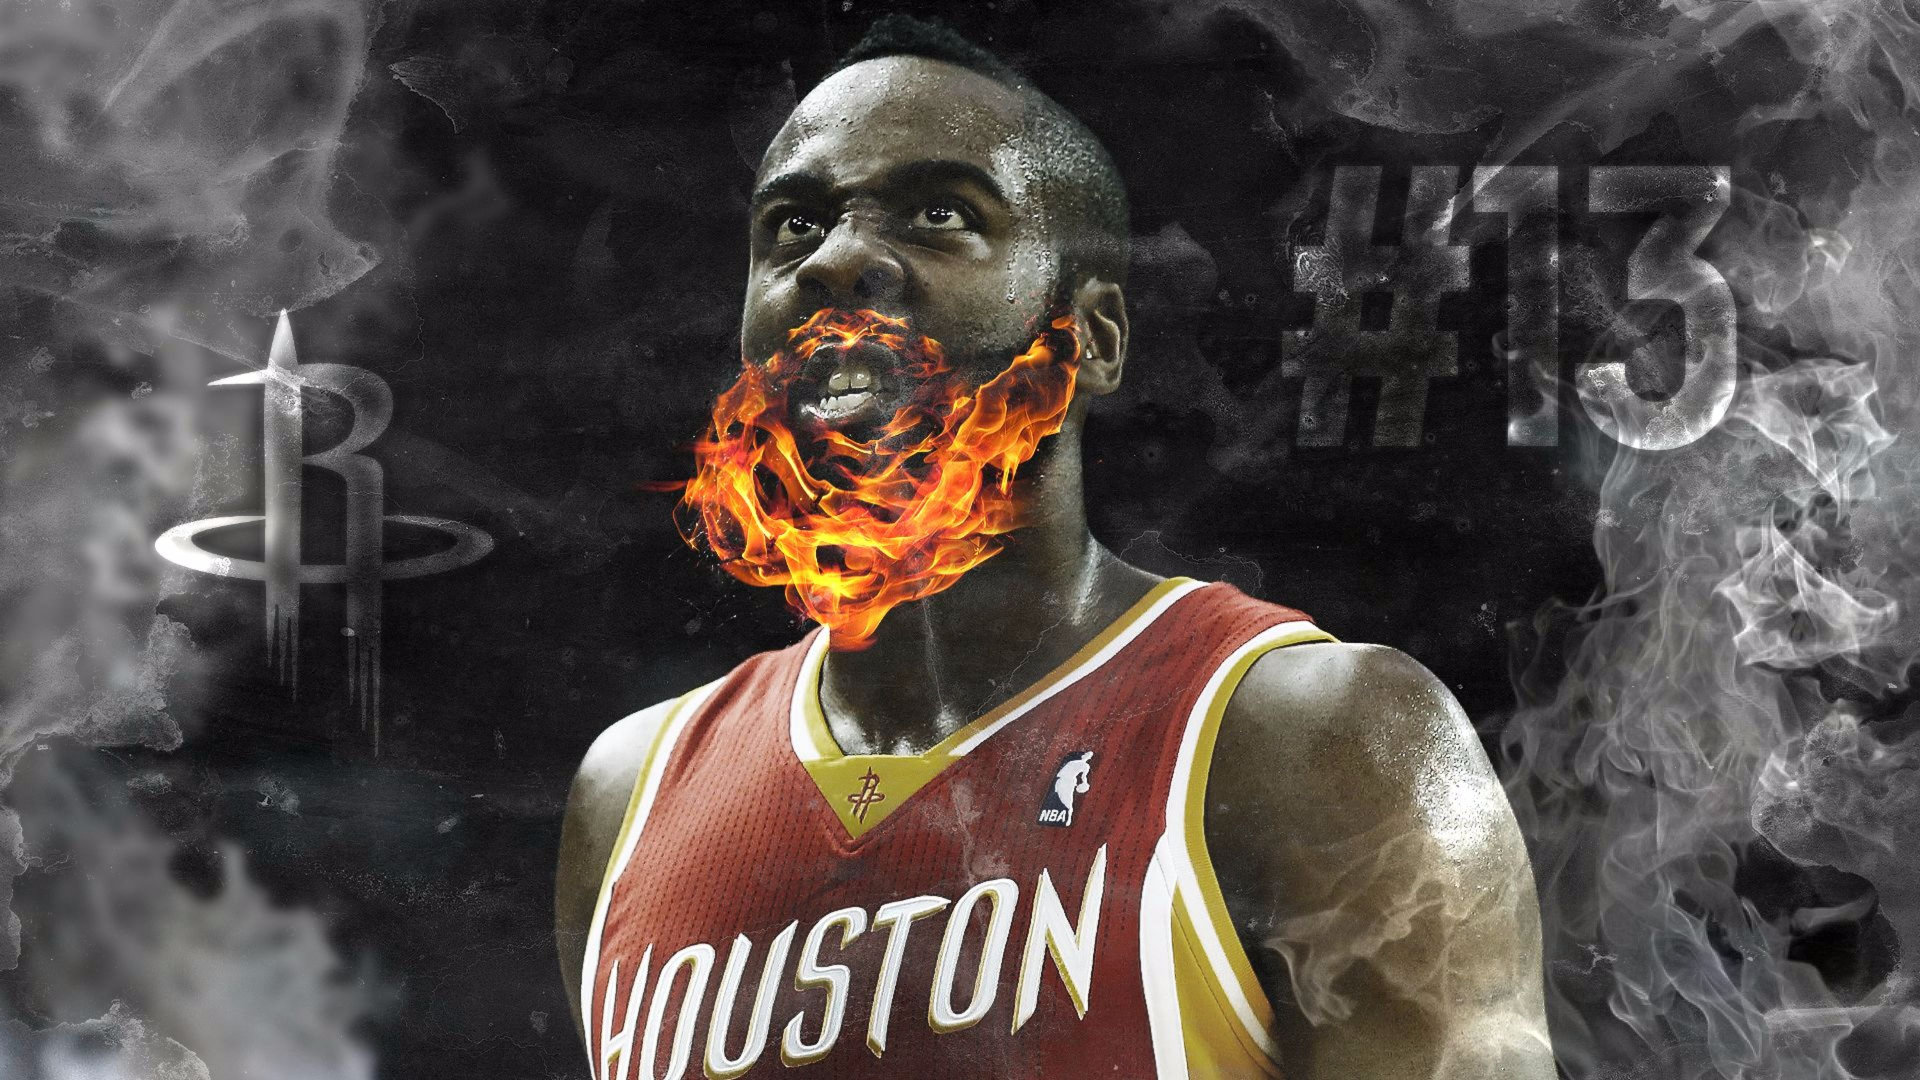 Free James Harden high quality wallpaper ID:281661 for hd 1080p desktop